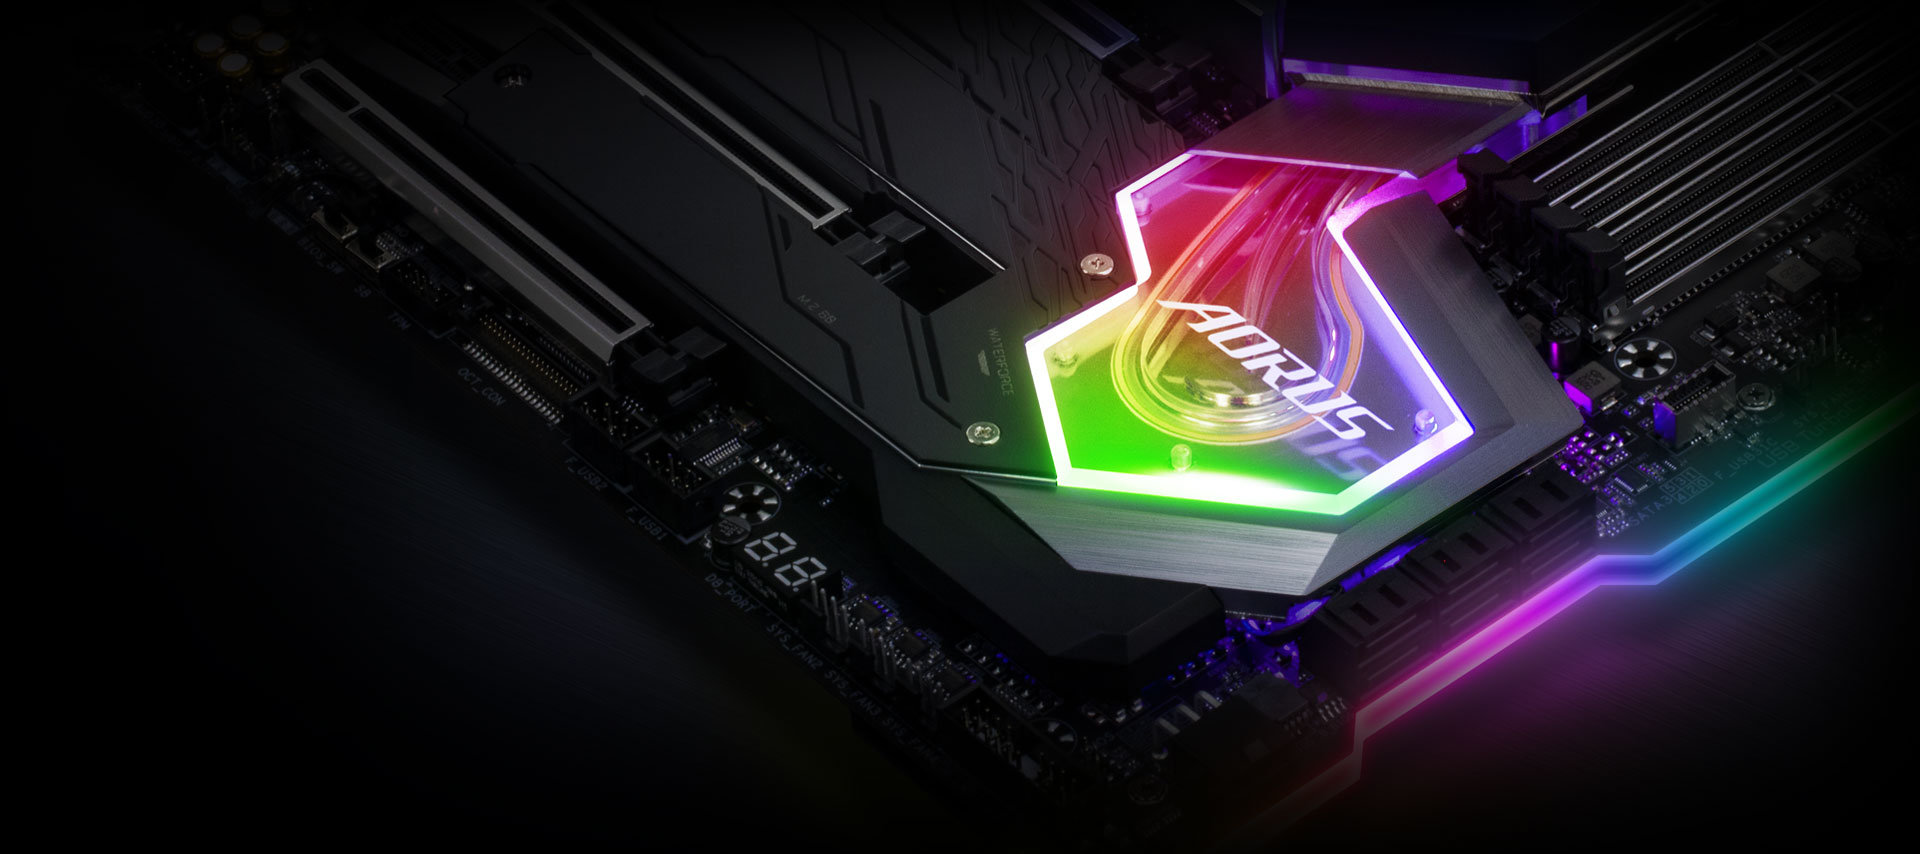 Closeup of the RGB-lit AORUS logo on the motherboard